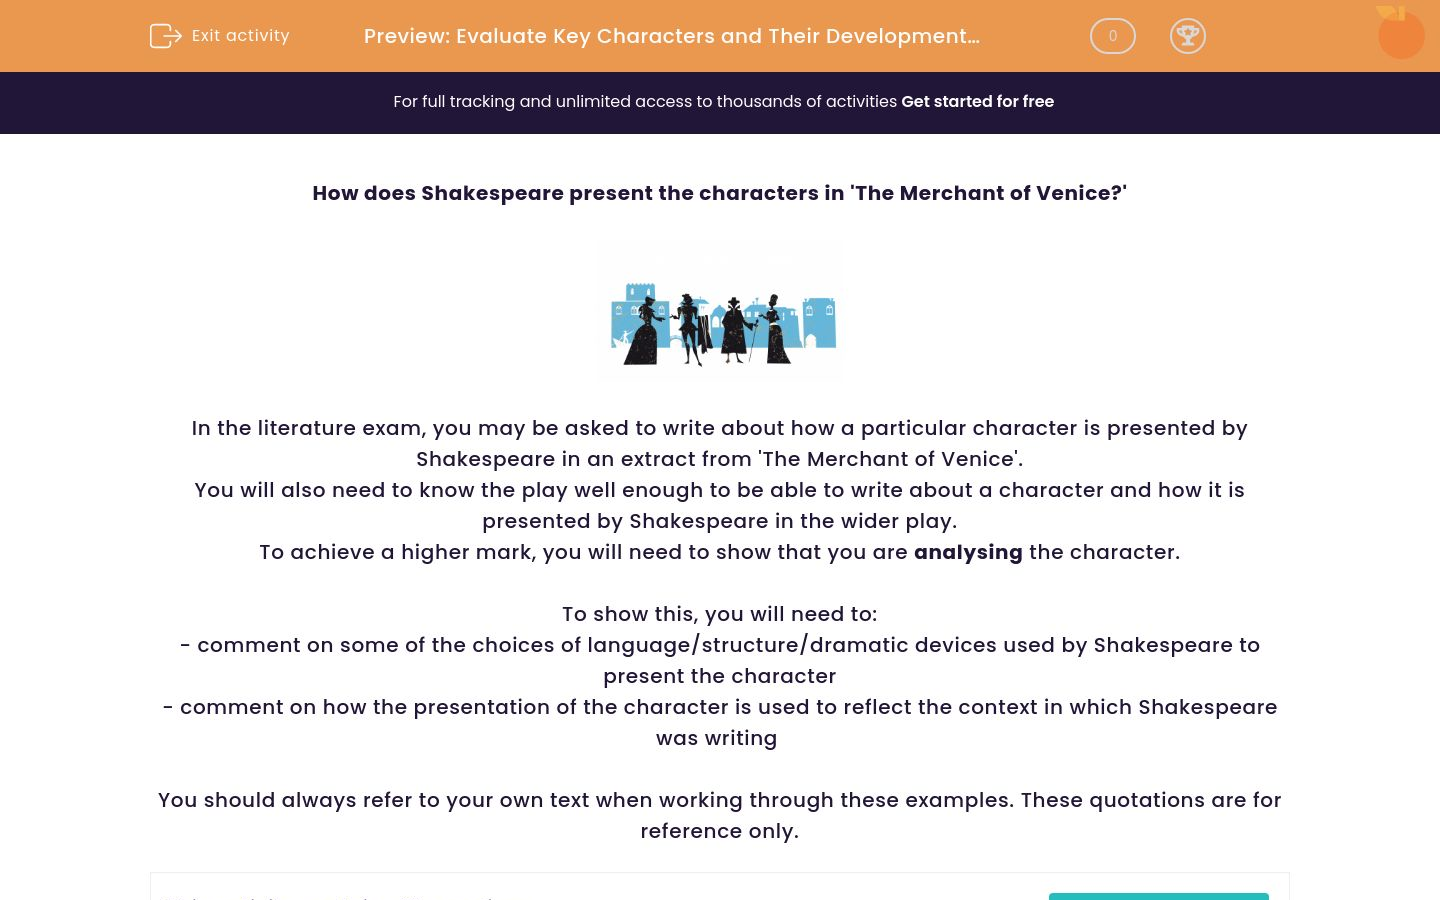 'Evaluate Key Characters and Their Development in 'The Merchant of Venice'' worksheet